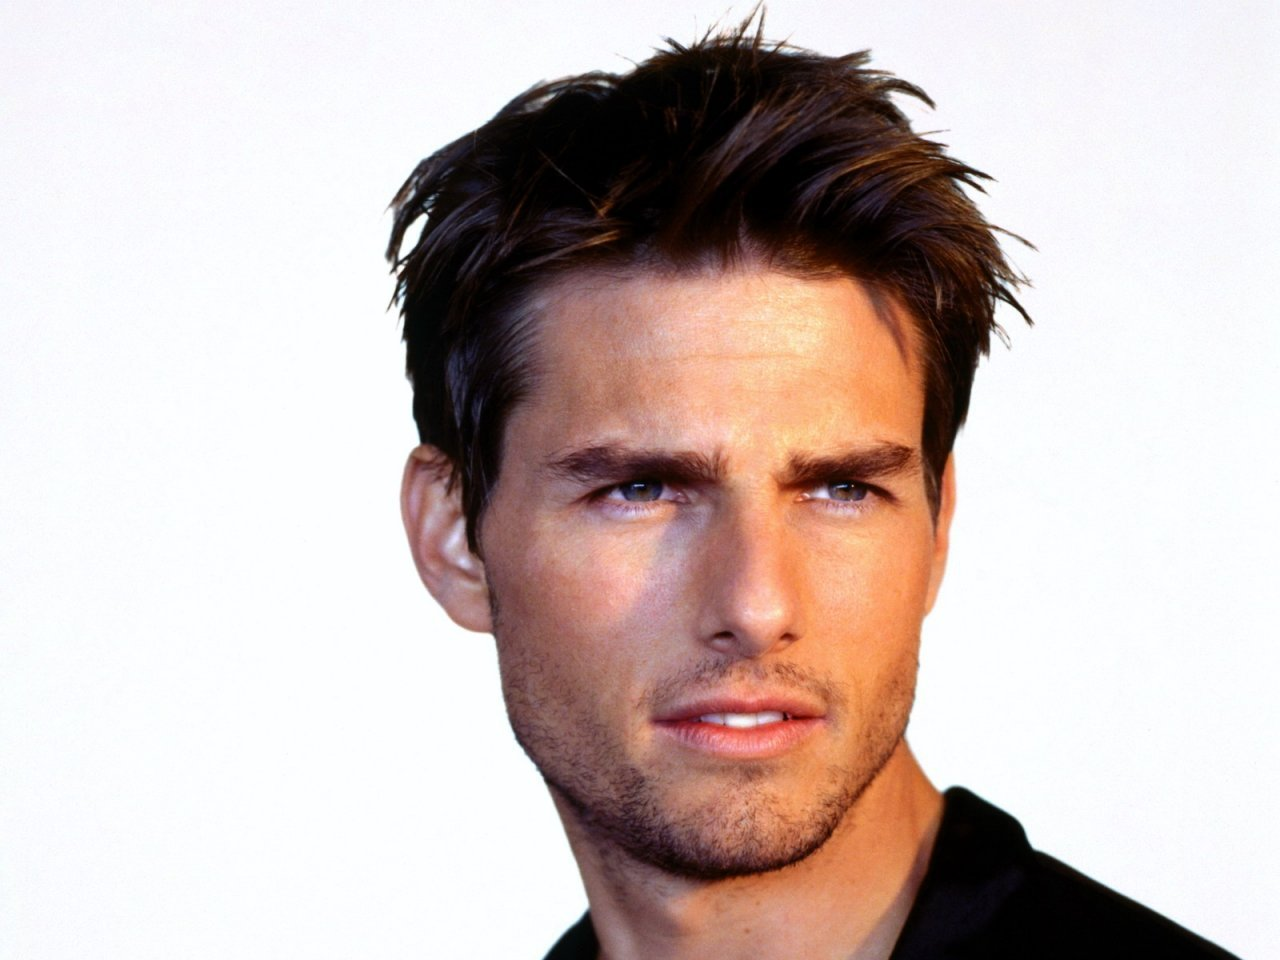 tom cruise high resolution wallpaper 1080p download 1280x960